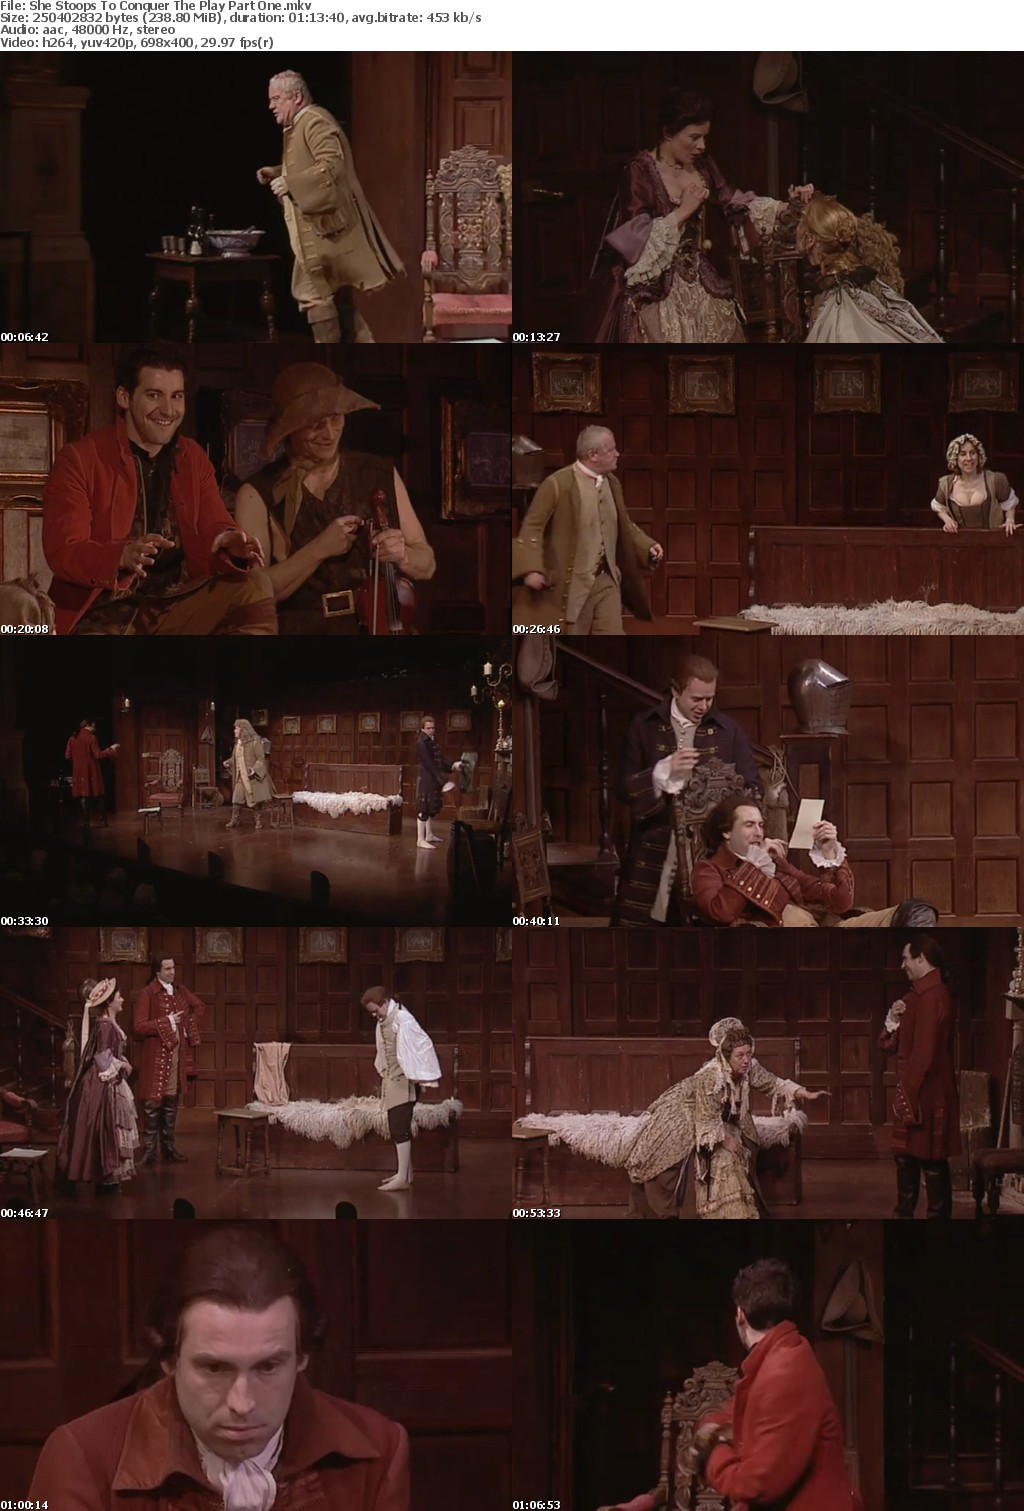 She Stoops To Conquer by Oliver Goldsmith Live from Heritage Theatre 2009